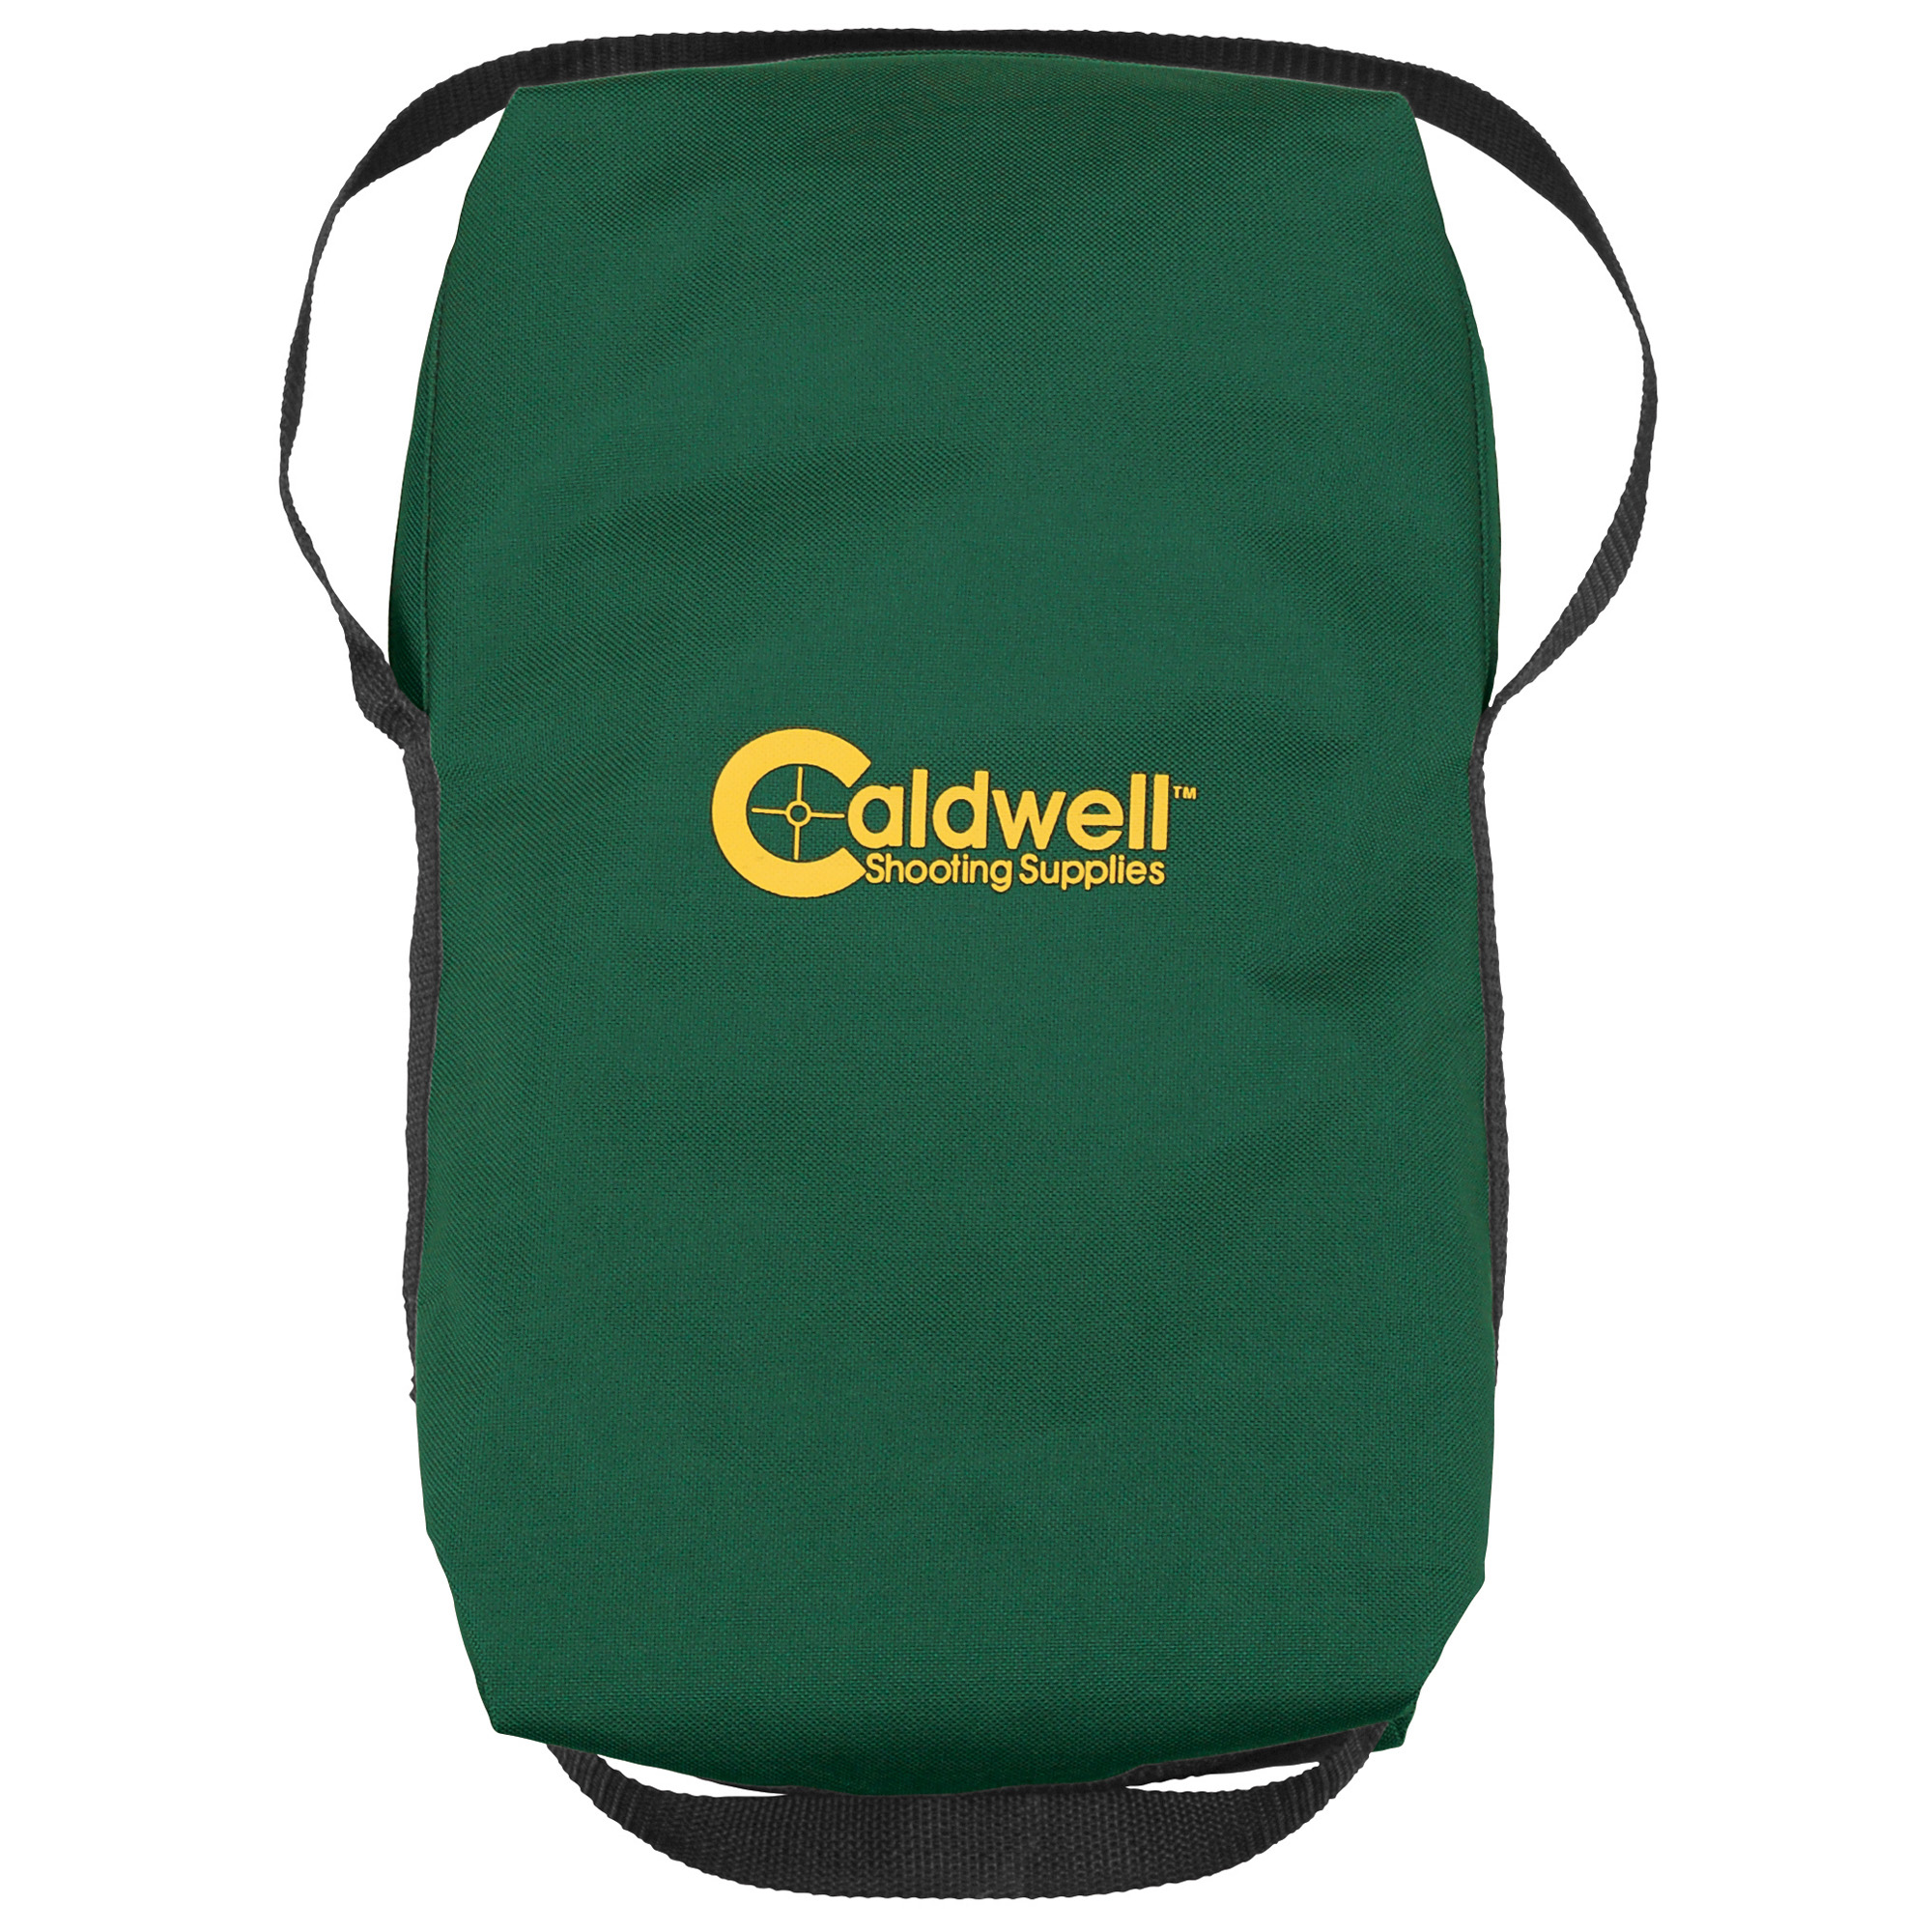 """Caldwell is a brand engineered to take your shot to the next level. With quality products developed to provide you unmatched precision"""" you will have the confidence to take the shot when it matters most."""